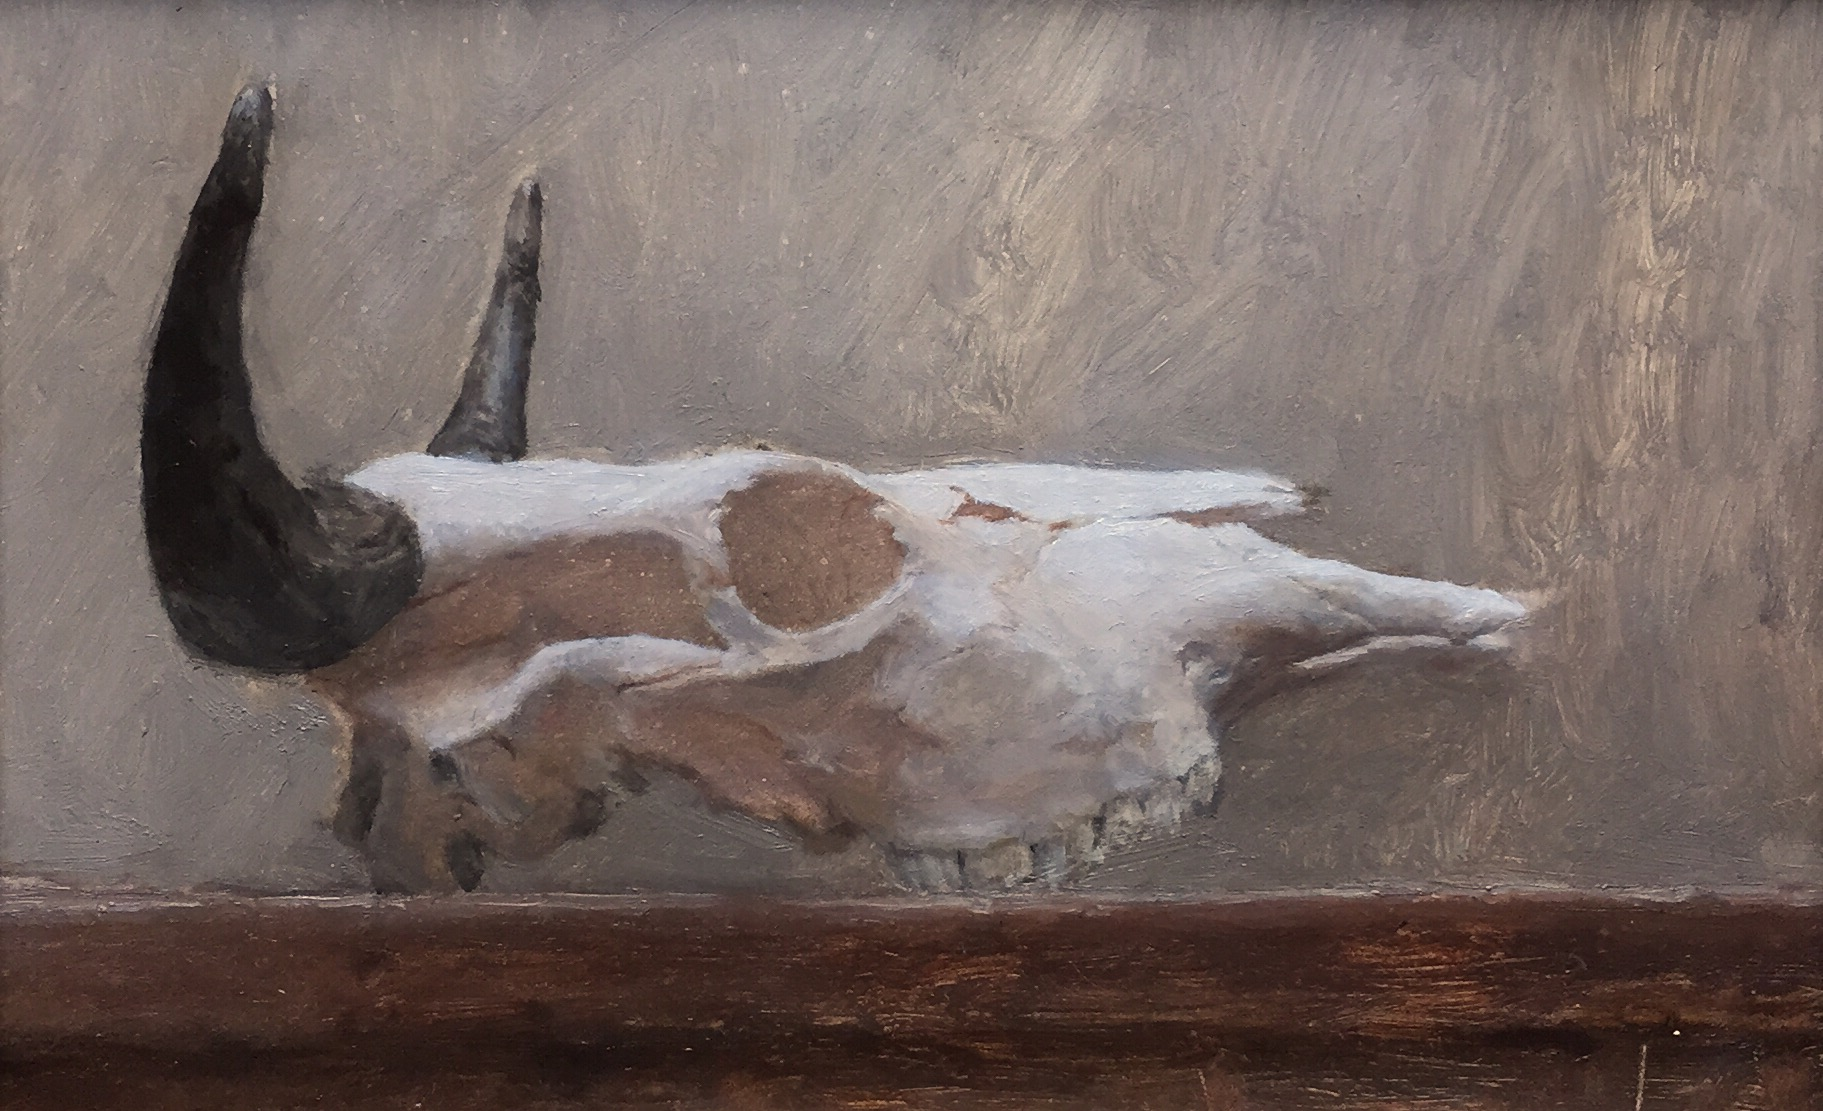 Kevin Müller Cisneros,  Steer   Skull,  oil on panel, 6.5x9.5 in